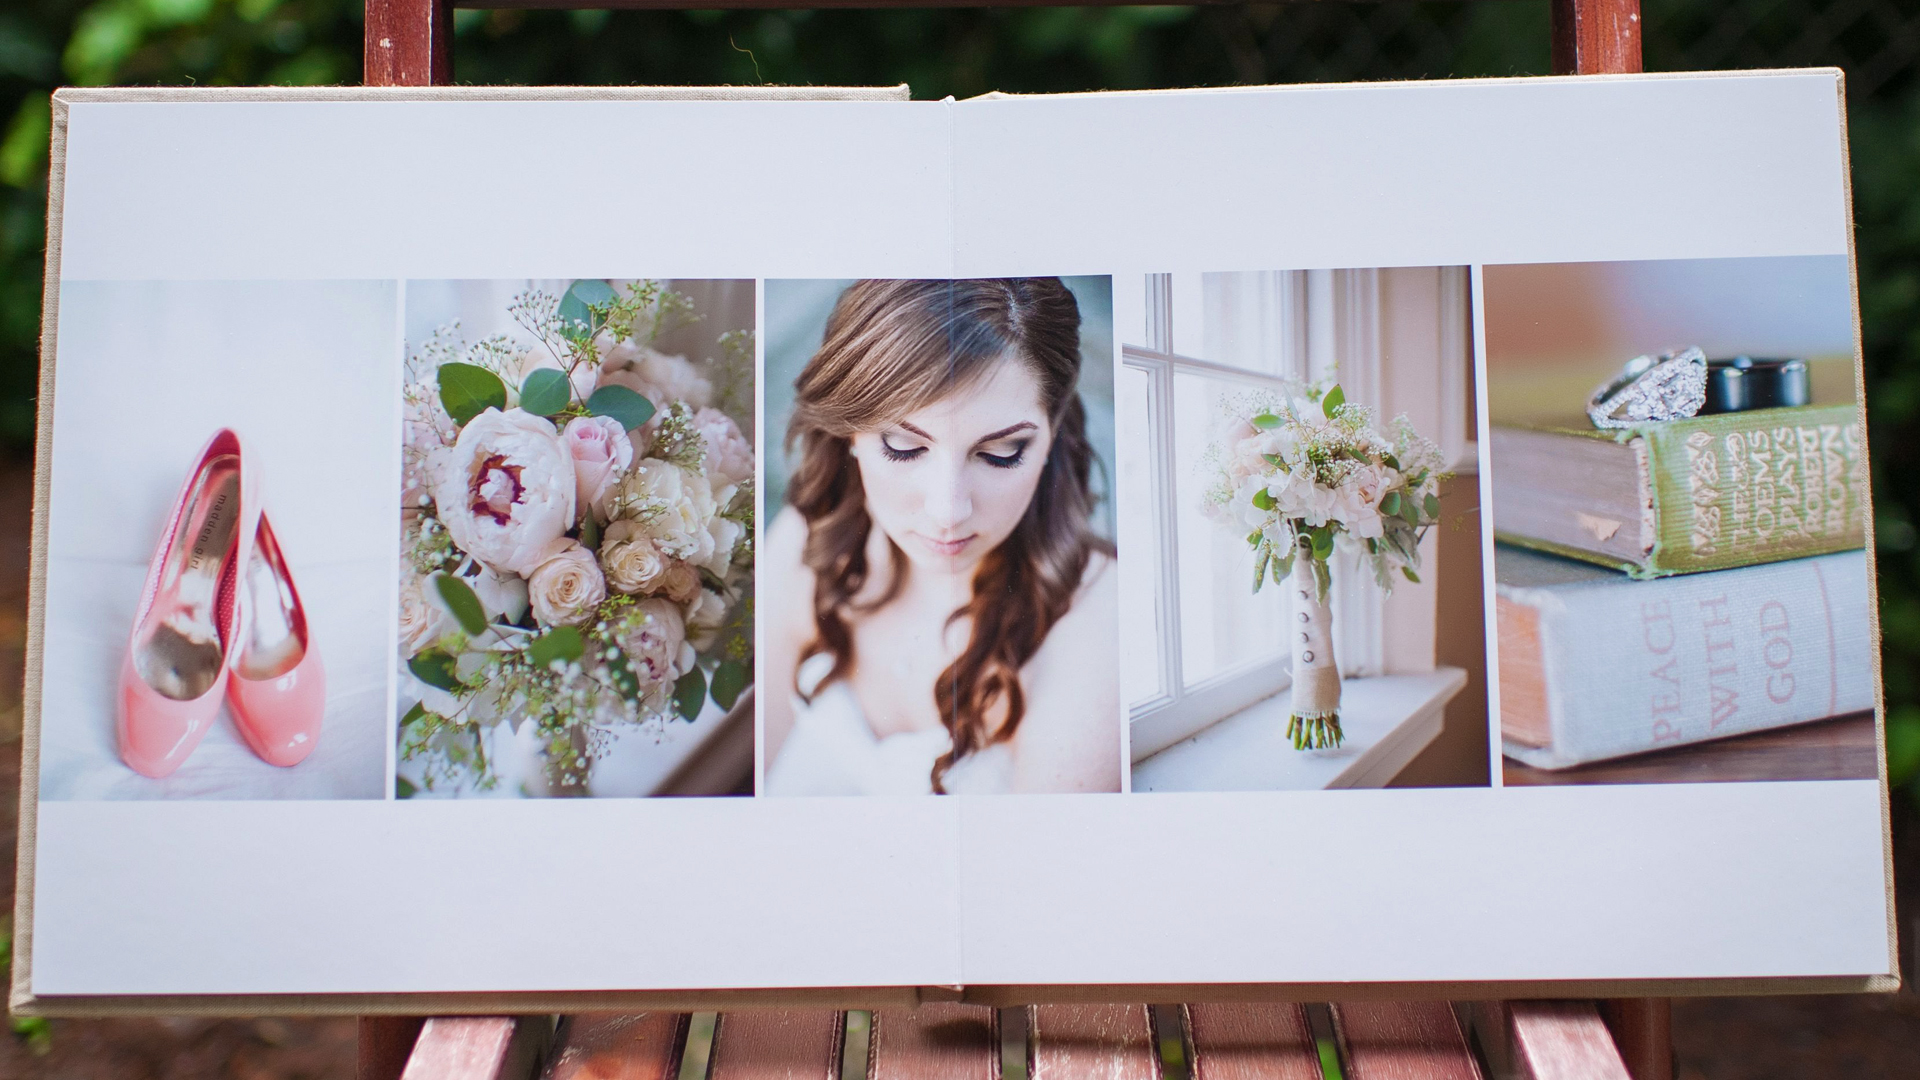 How To Make A Wedding Photo Album – Don't Make Your Wedding Photo Album An Afterthought